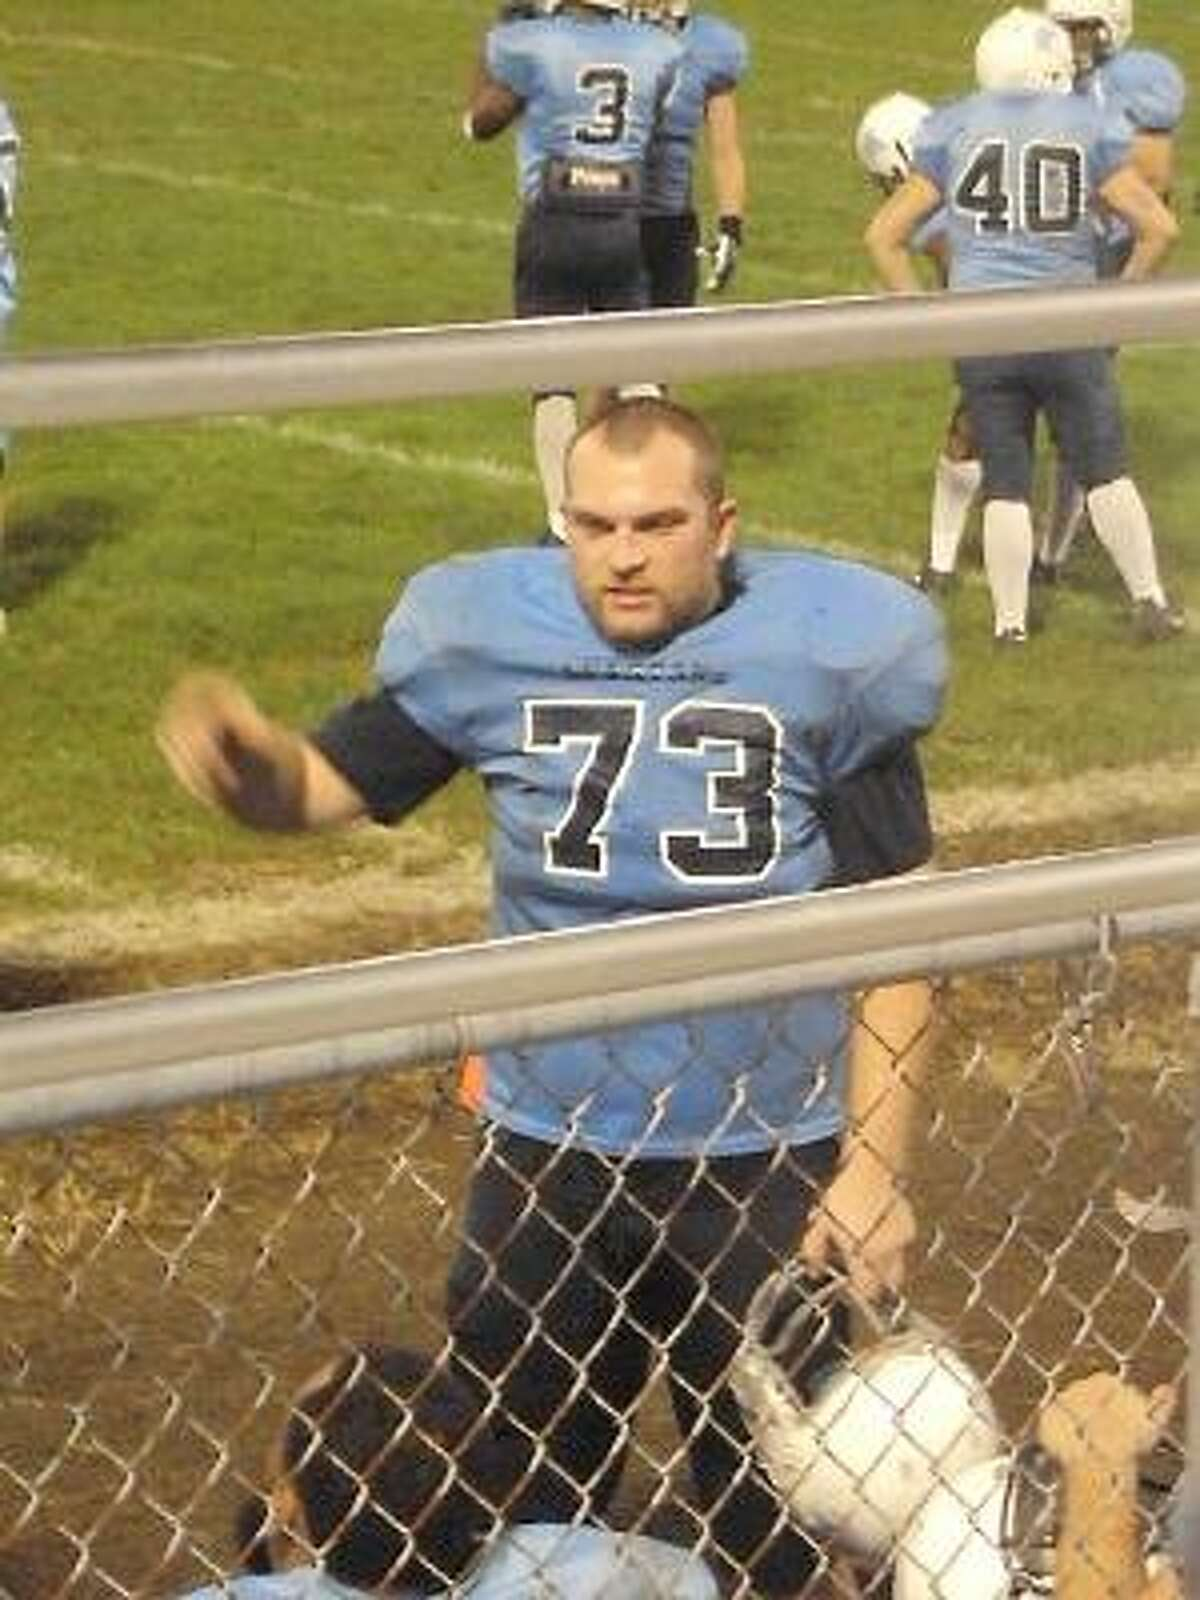 Submitted Photo/Andrew Theriault Andrew Theriault played football at Torrington High School from 1997-2001. He was named to the All-NVL team as a guard/defensive lineman and again as a center/defensive lineman. He now plays semi-pro football for the Hartford football Whalers.